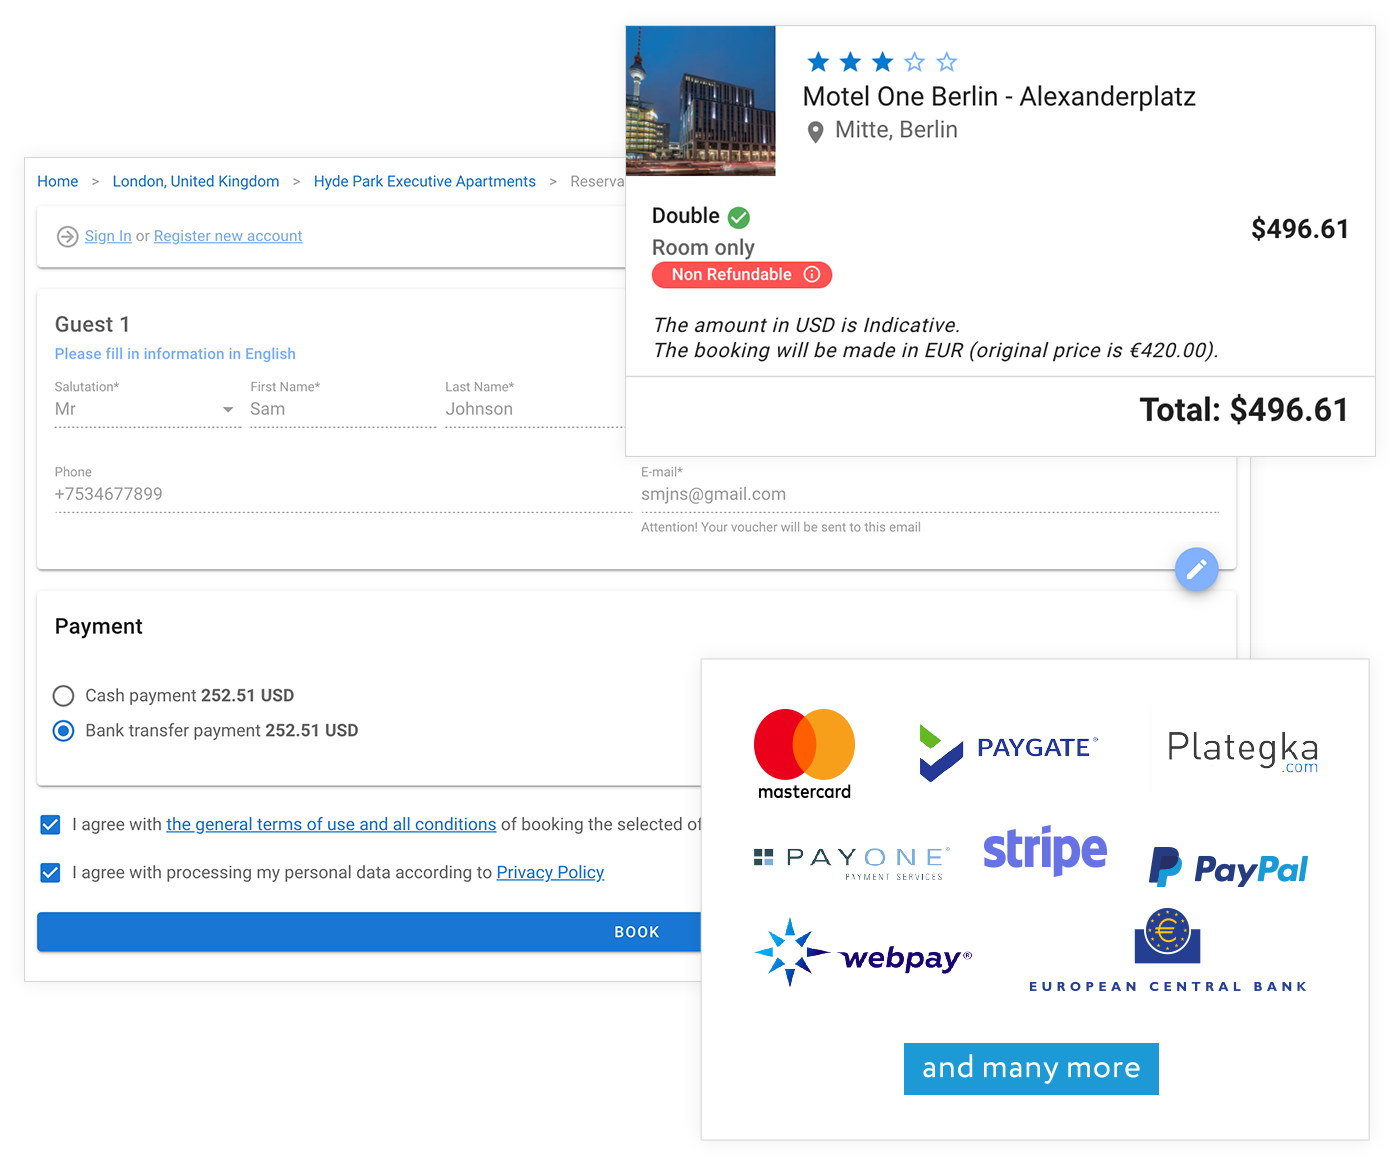 Quick and Easy Self-Booking and Payment